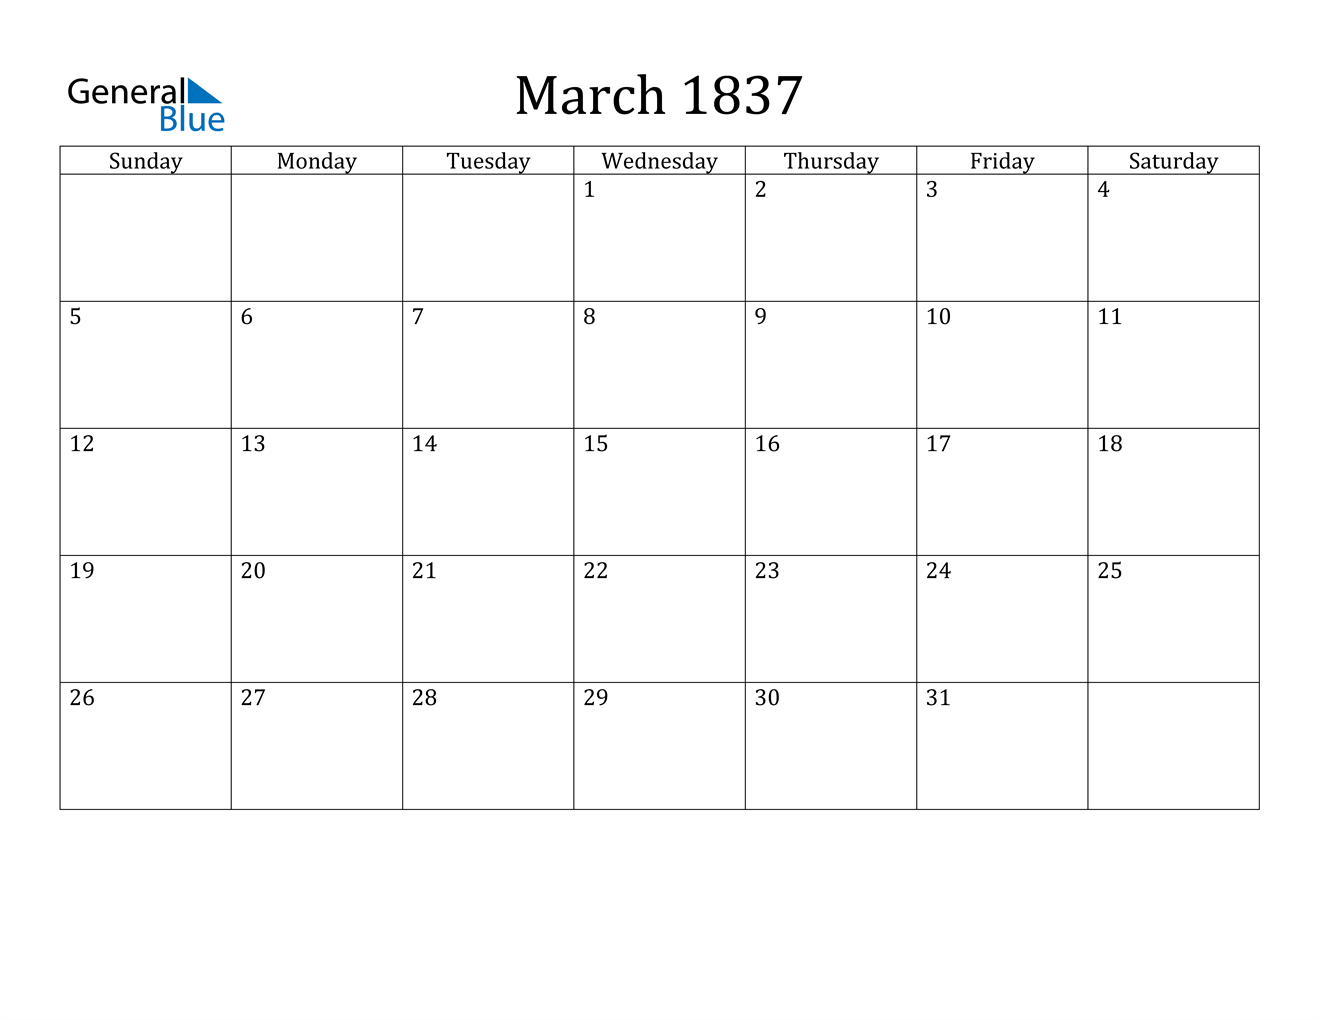 Image of March 1837 Calendar